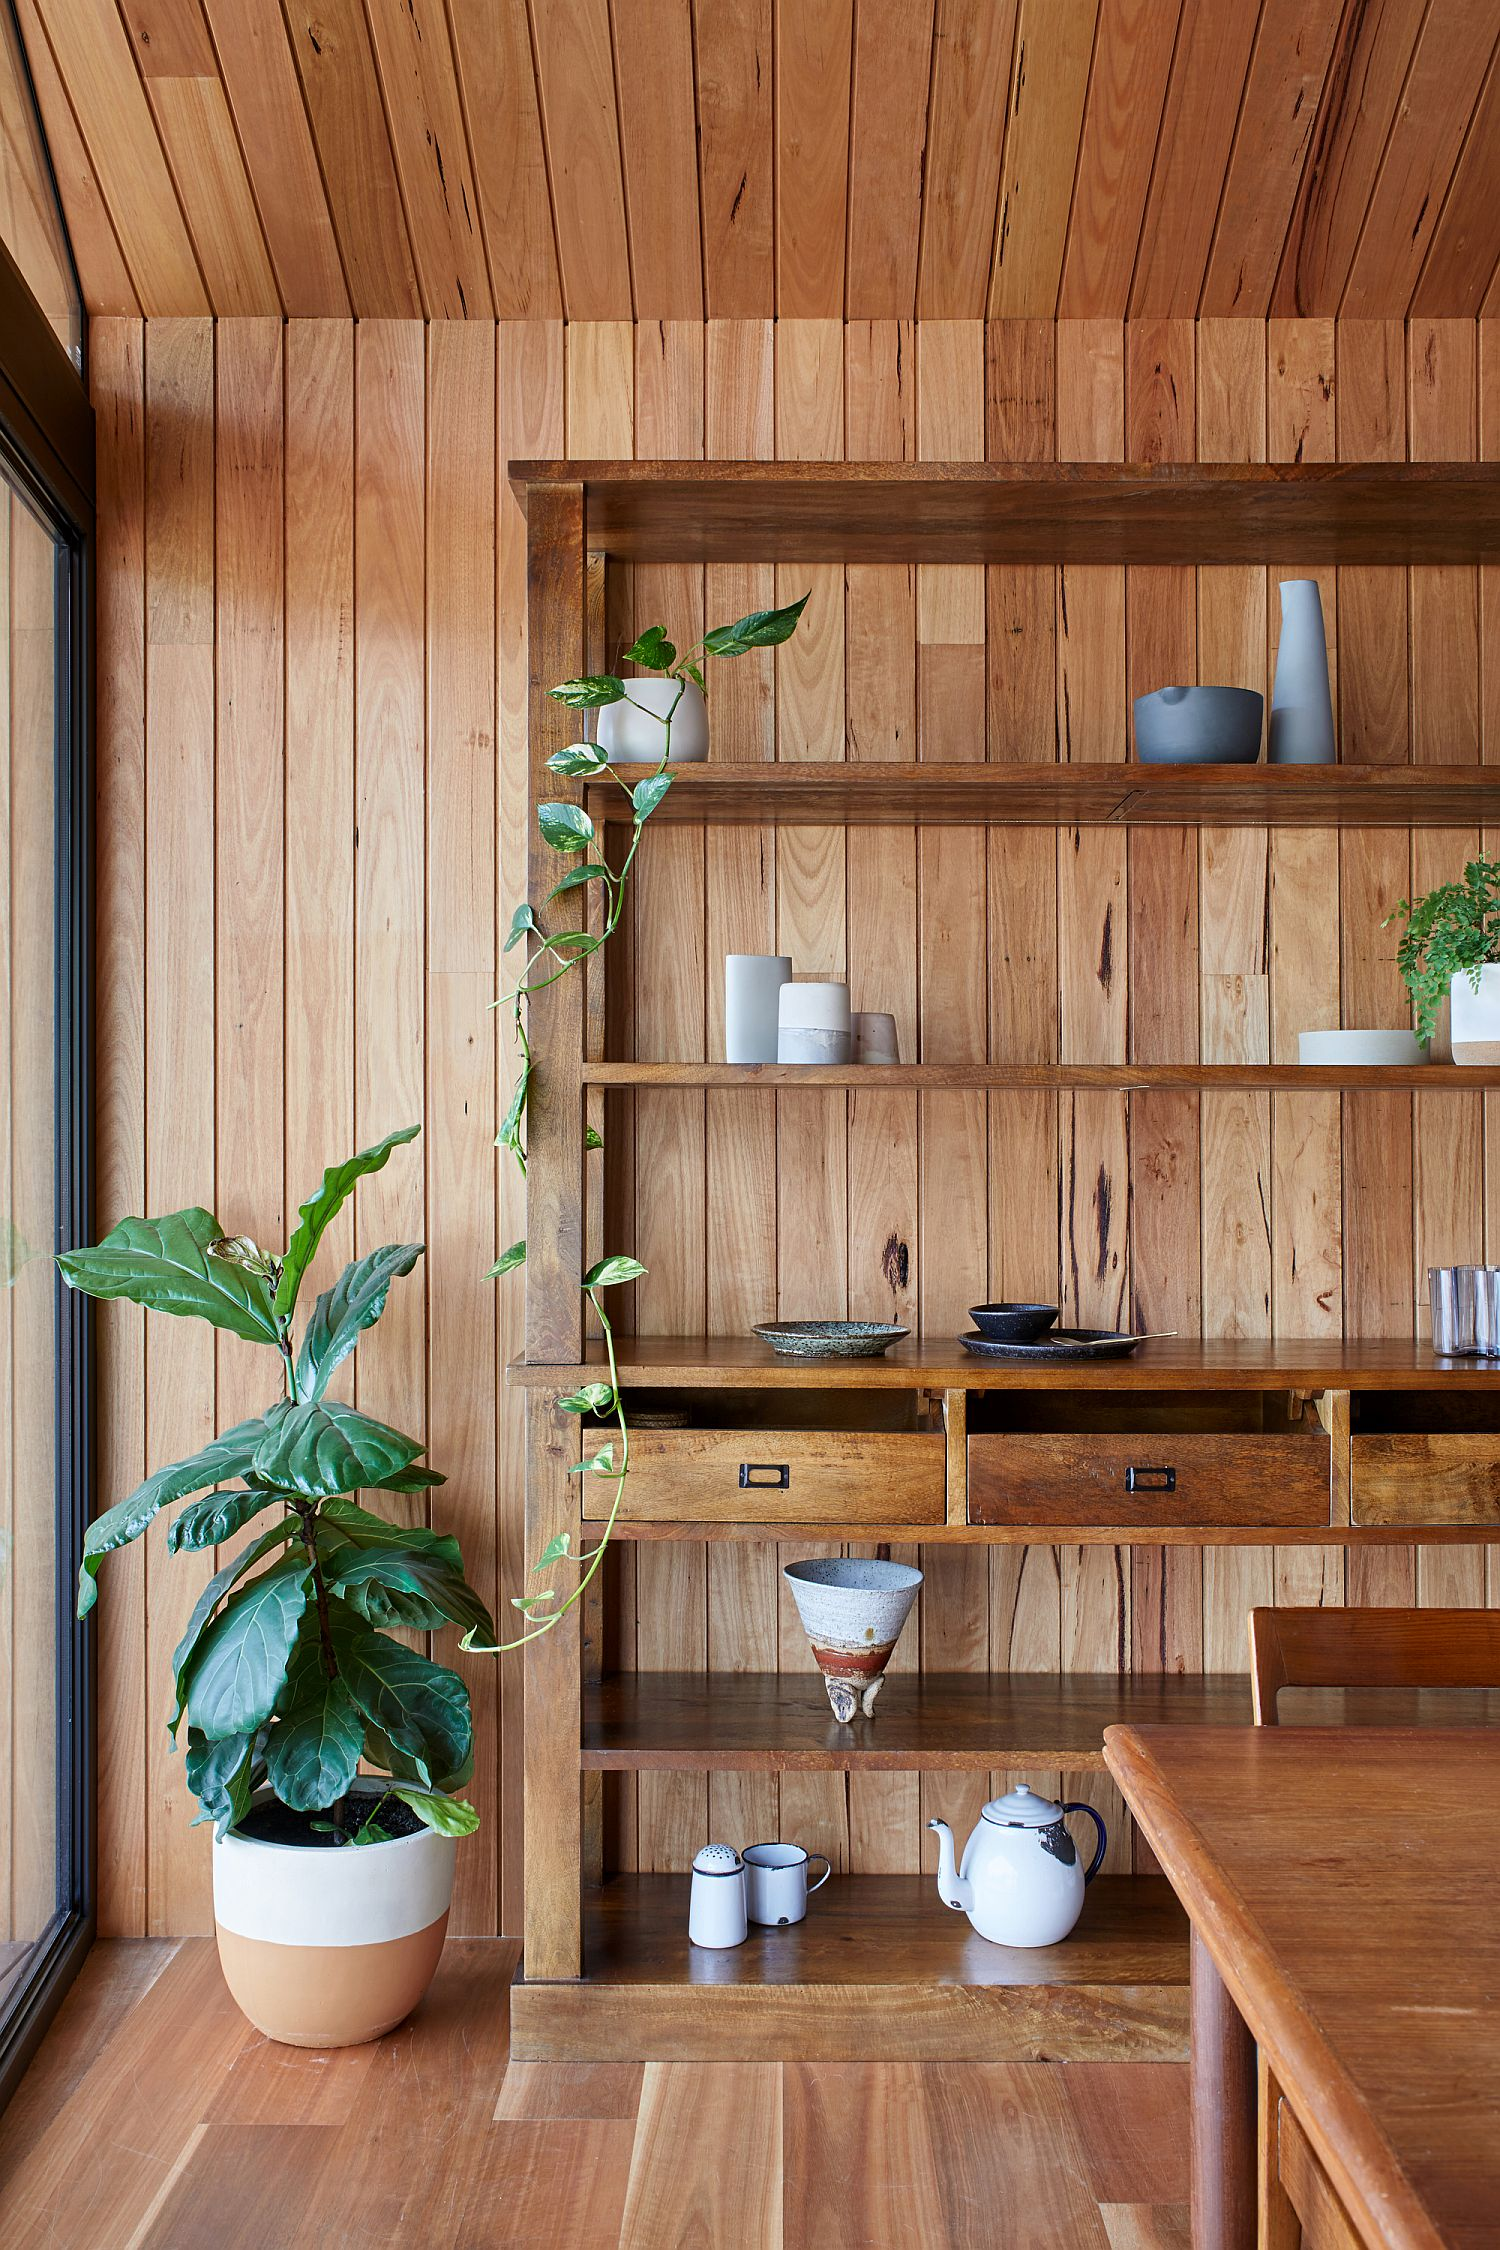 Greenery-and-wooden-boards-give-the-extension-a-cozy-modern-appeal